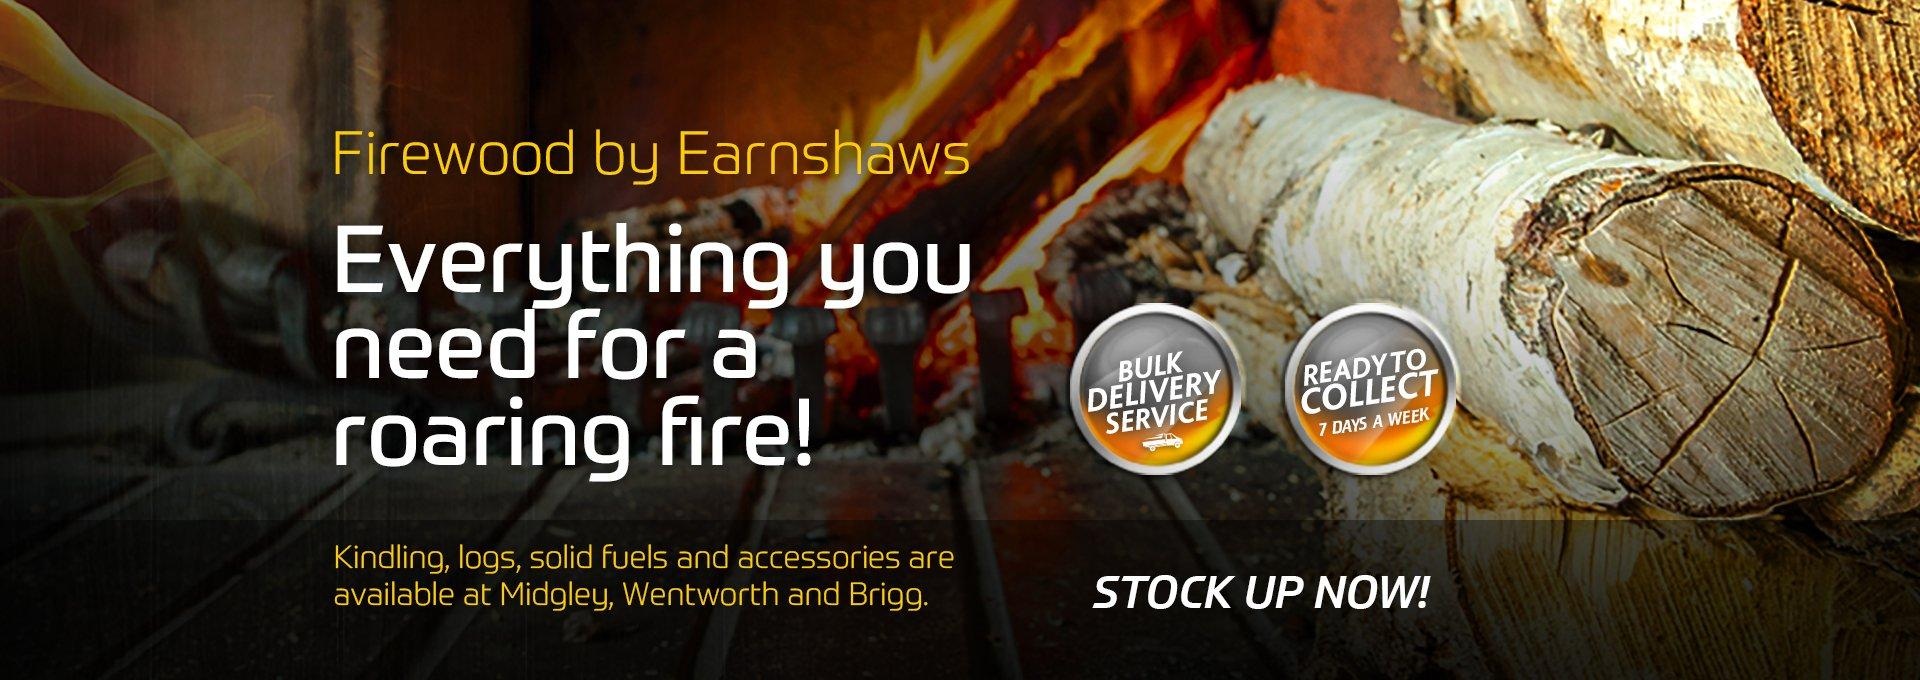 Everything you need for a roaring fire this Autumn!